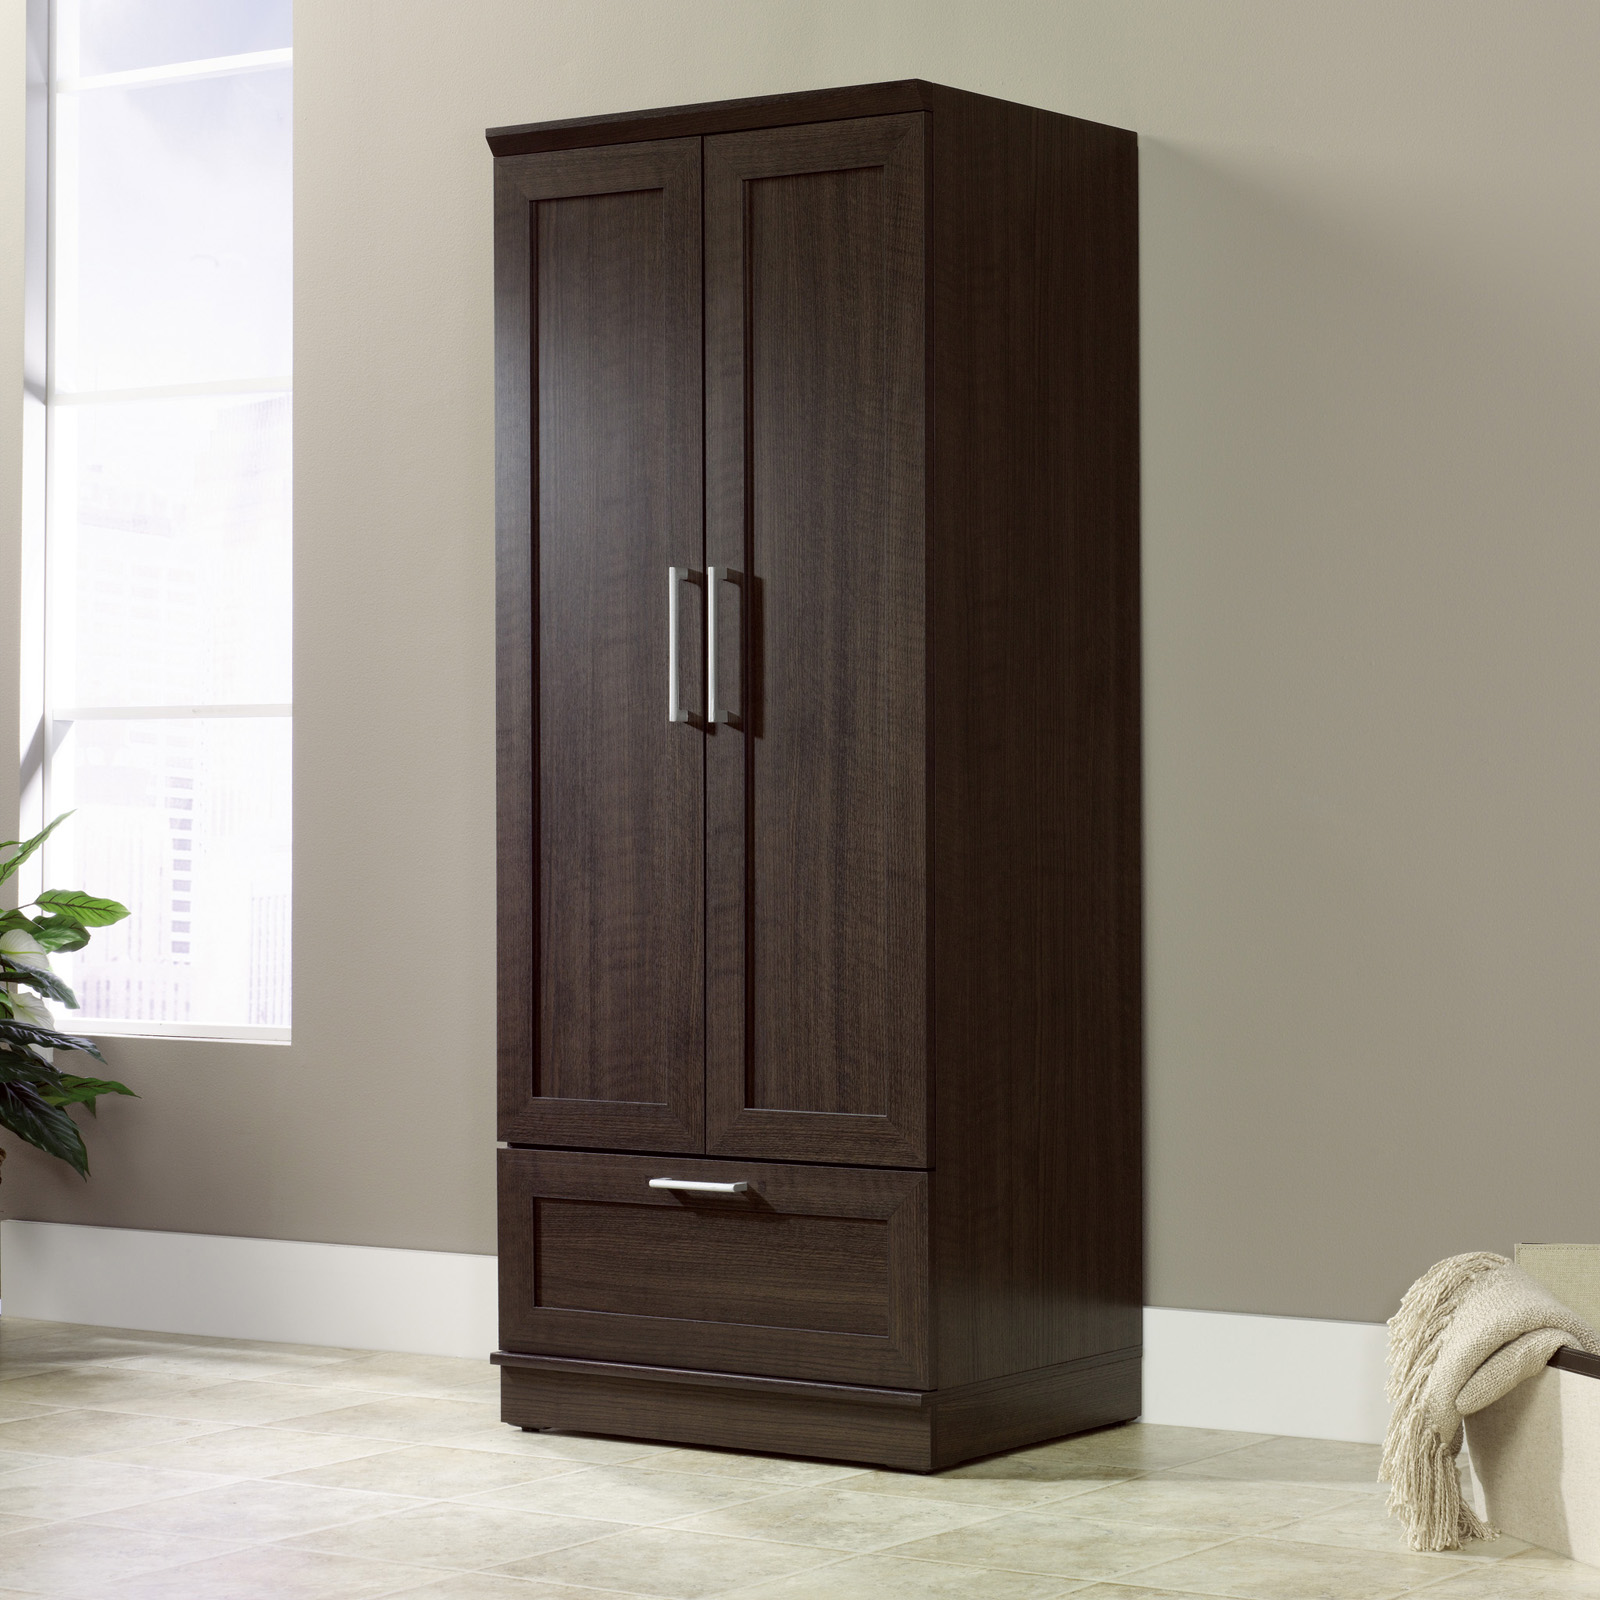 Sauder Homeplus Swing Out Storage Cabinet Pantry Cabinets at – Sauder Storage Cabinet with Drawer